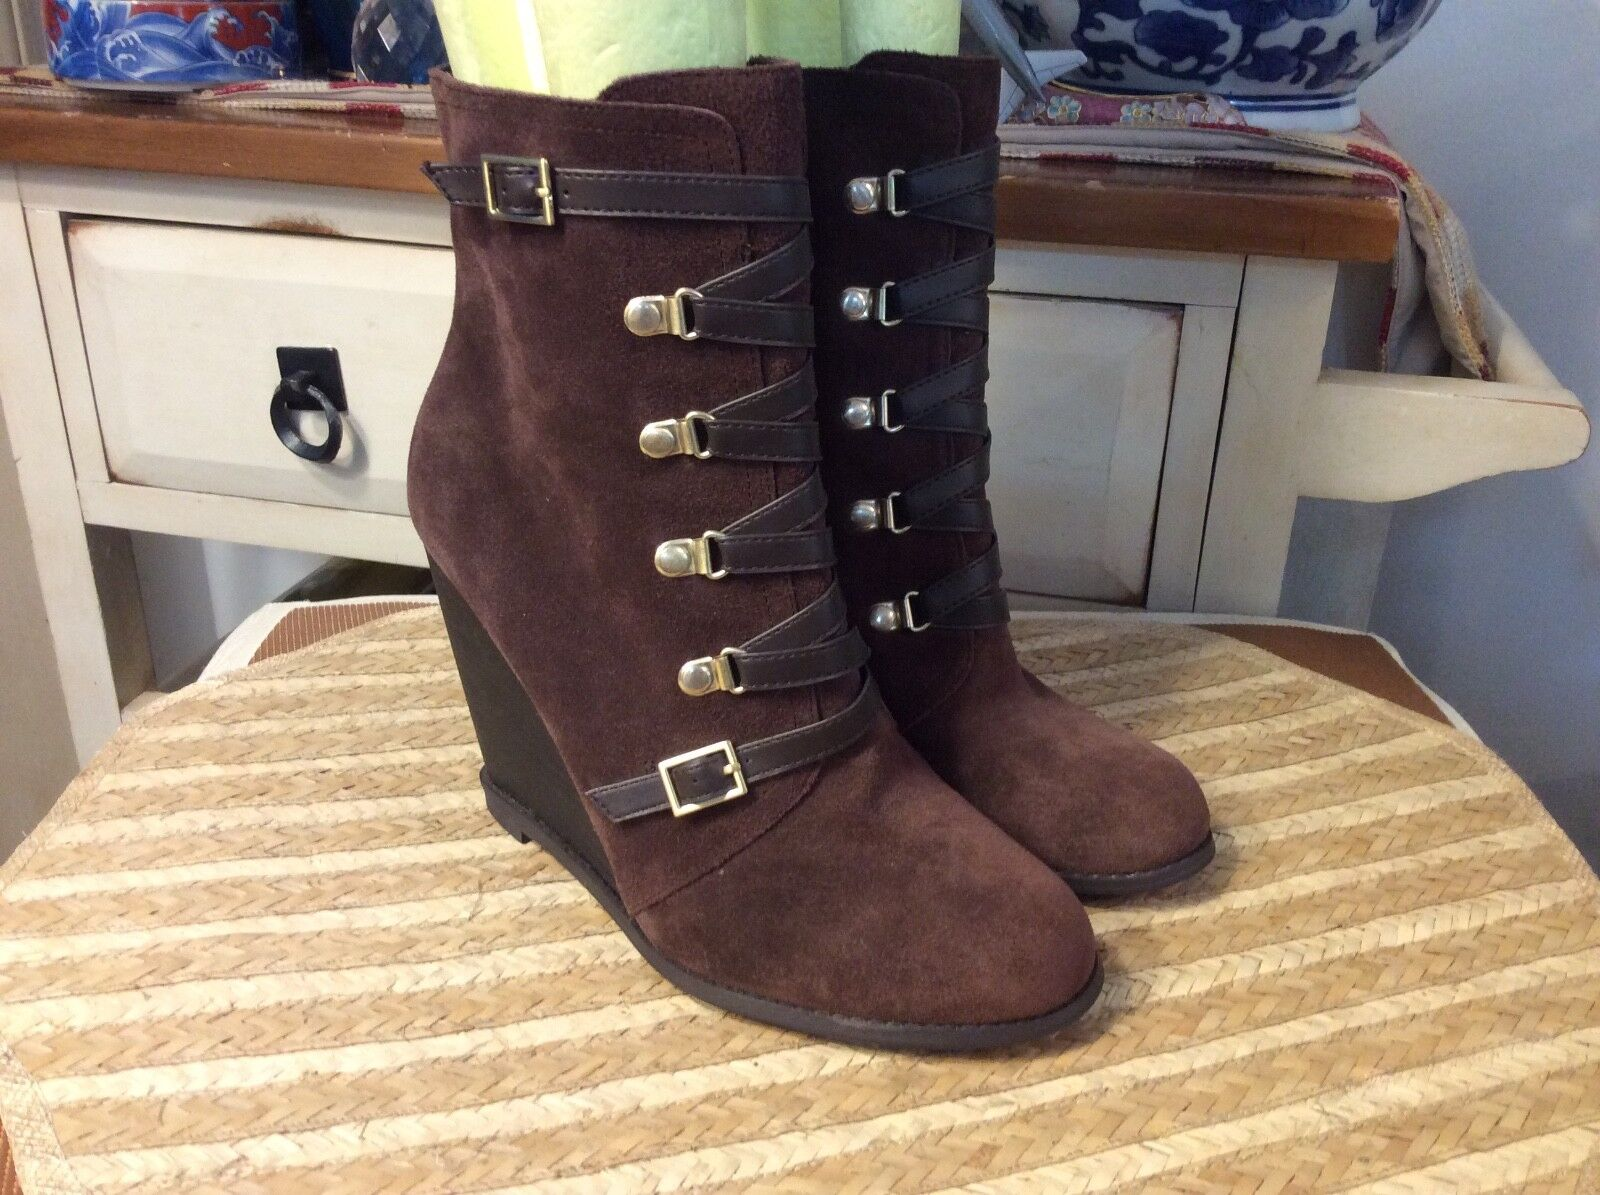 BCBG Kadeer Women's Brown Suede Side Zip Wedge Ankle Boots Size 8M